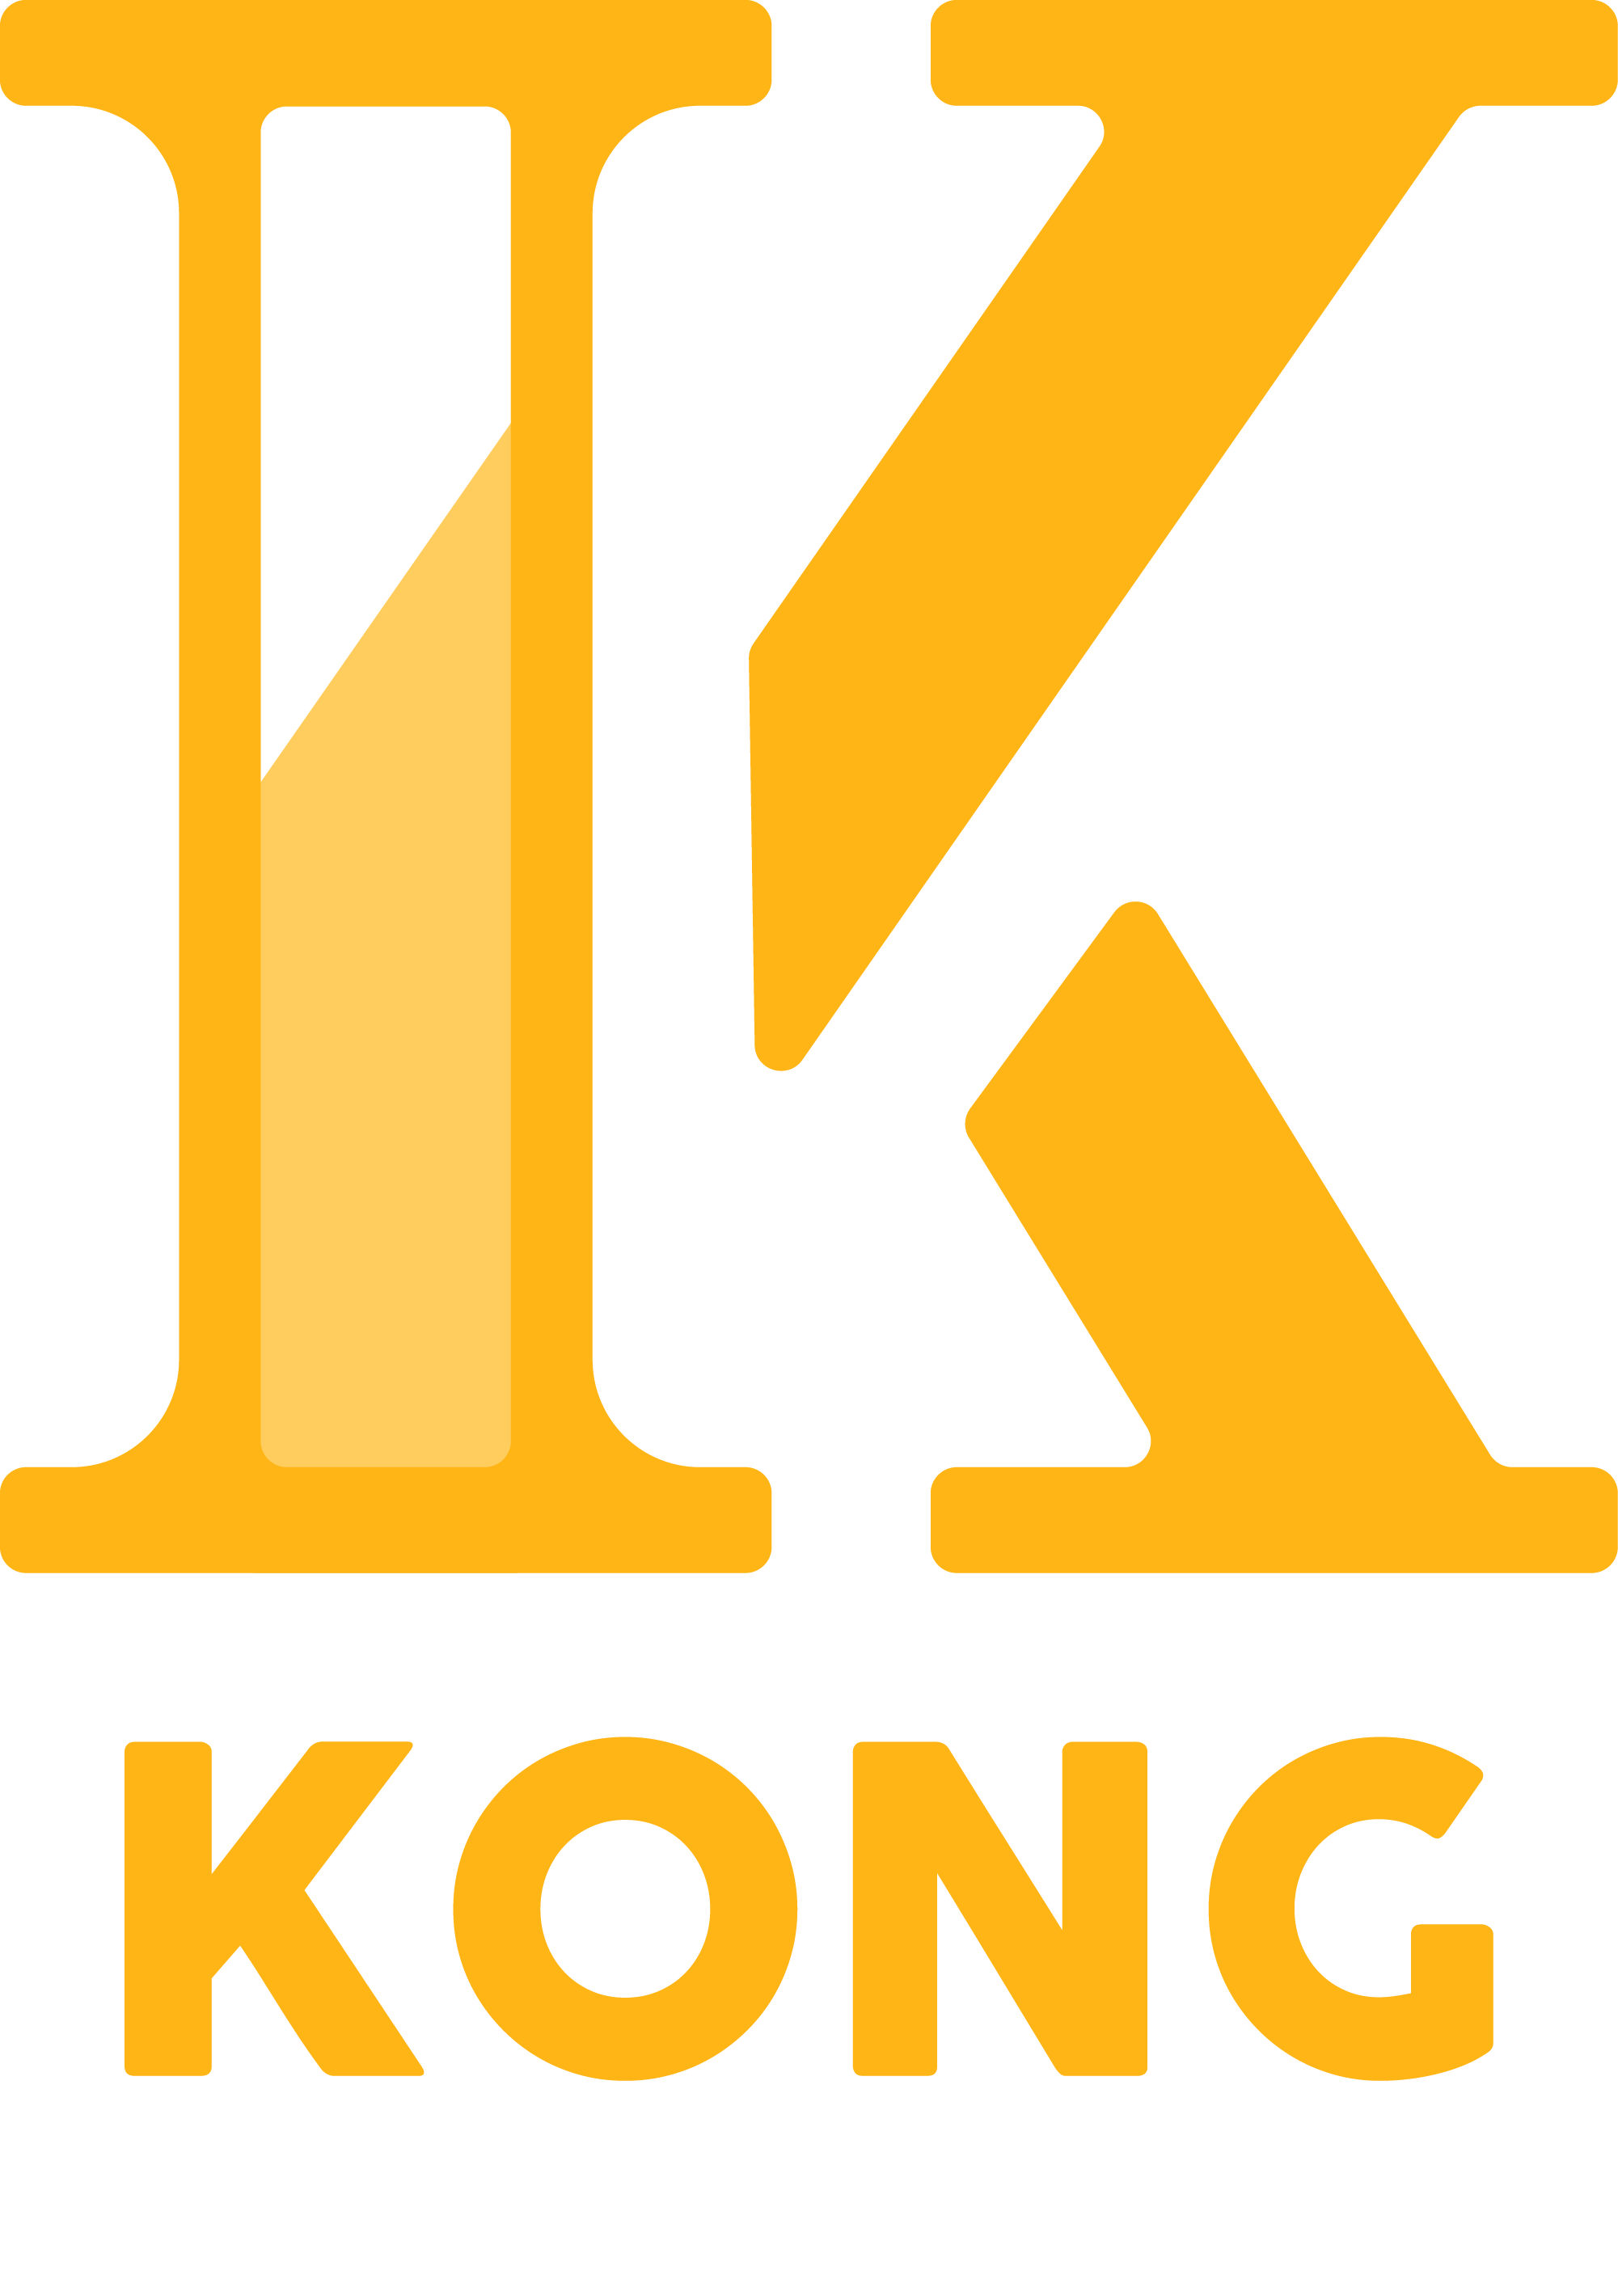 KongBuilding_Iconiclogo_onnavy